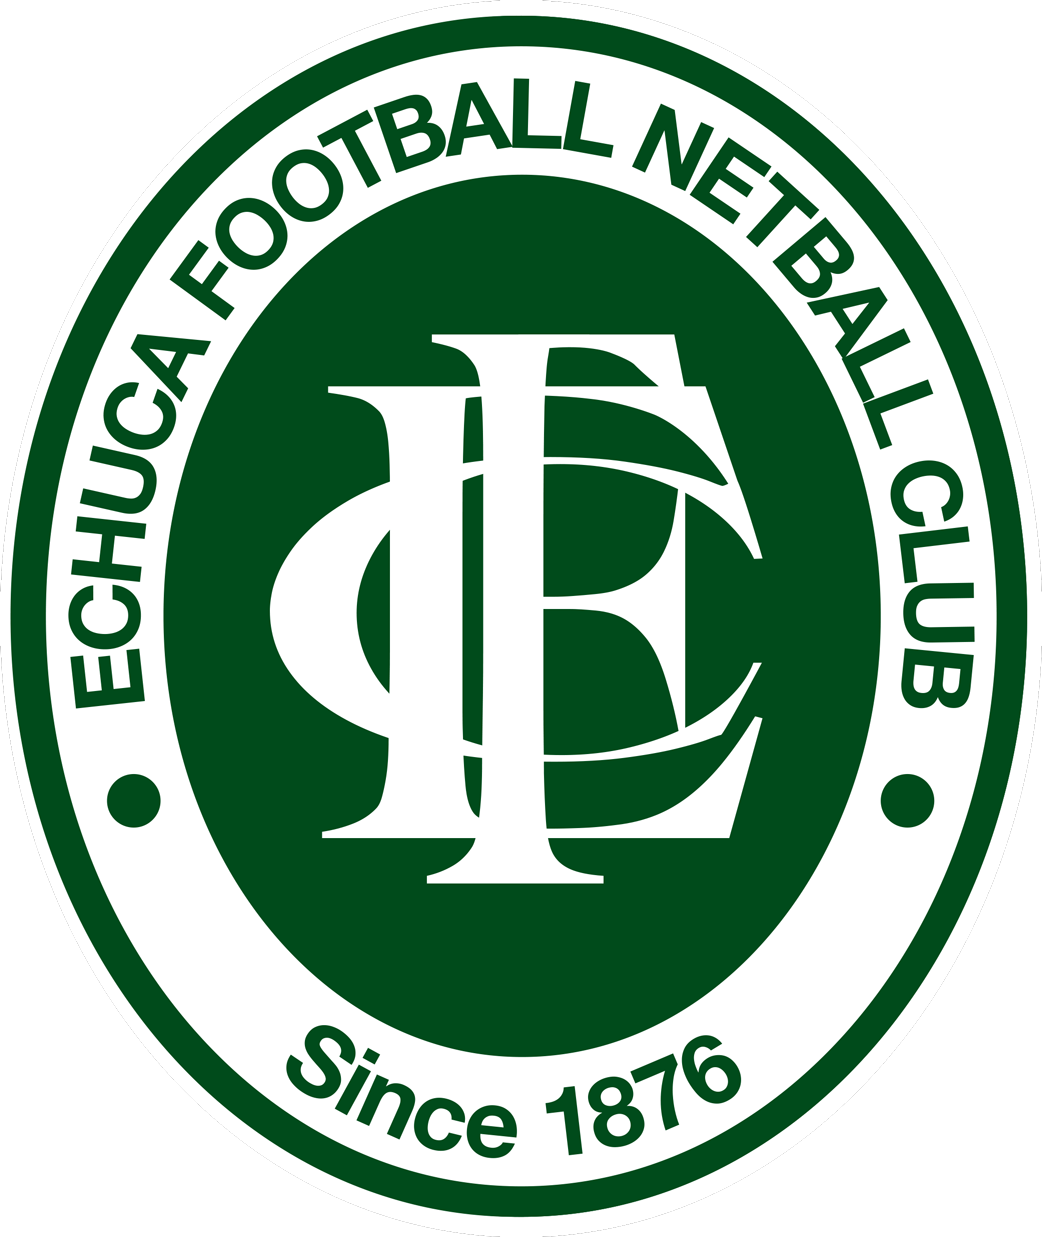 Echuca Football Netball Club